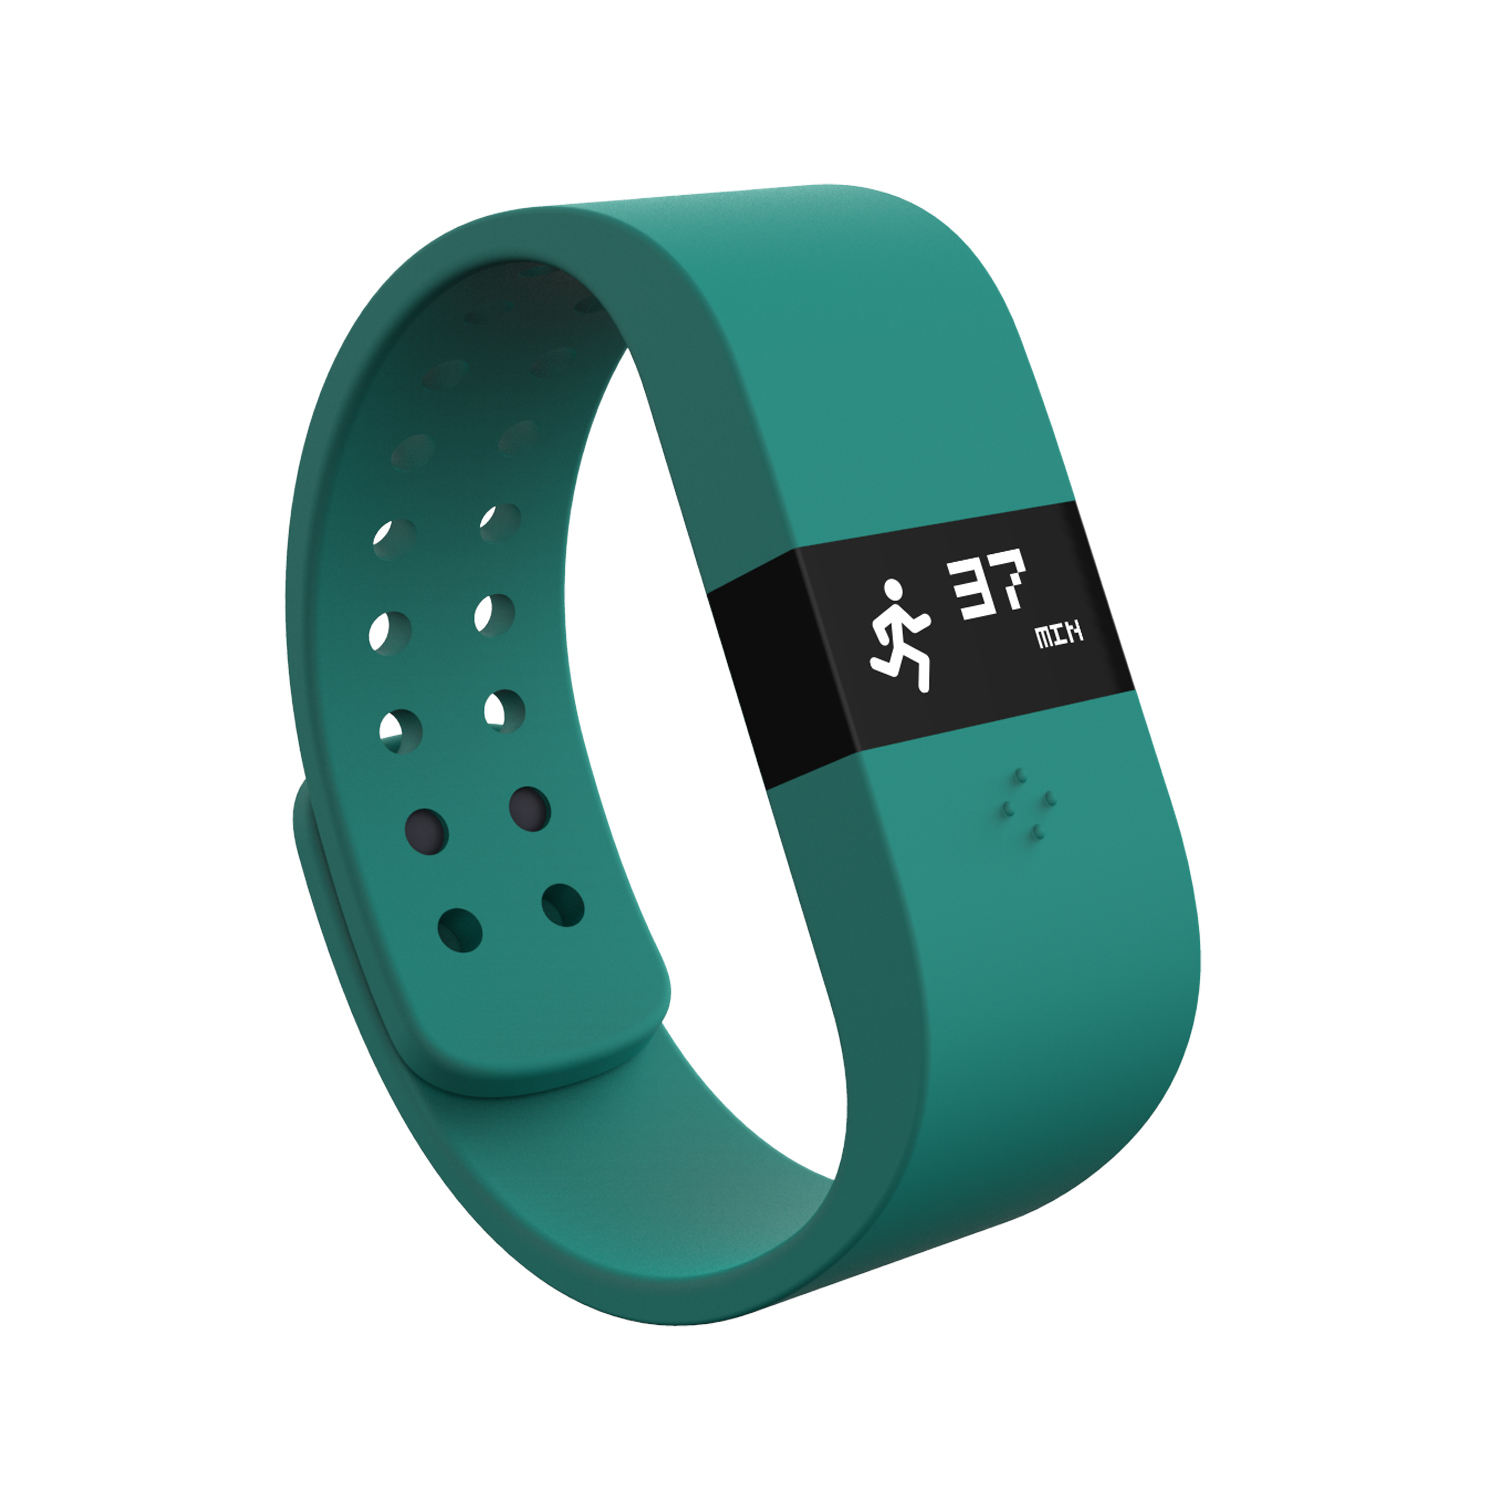 ERI Fitness Activity Tracker Bracelet Pedometer Sleep Monitor for Android iOS Mintgreen